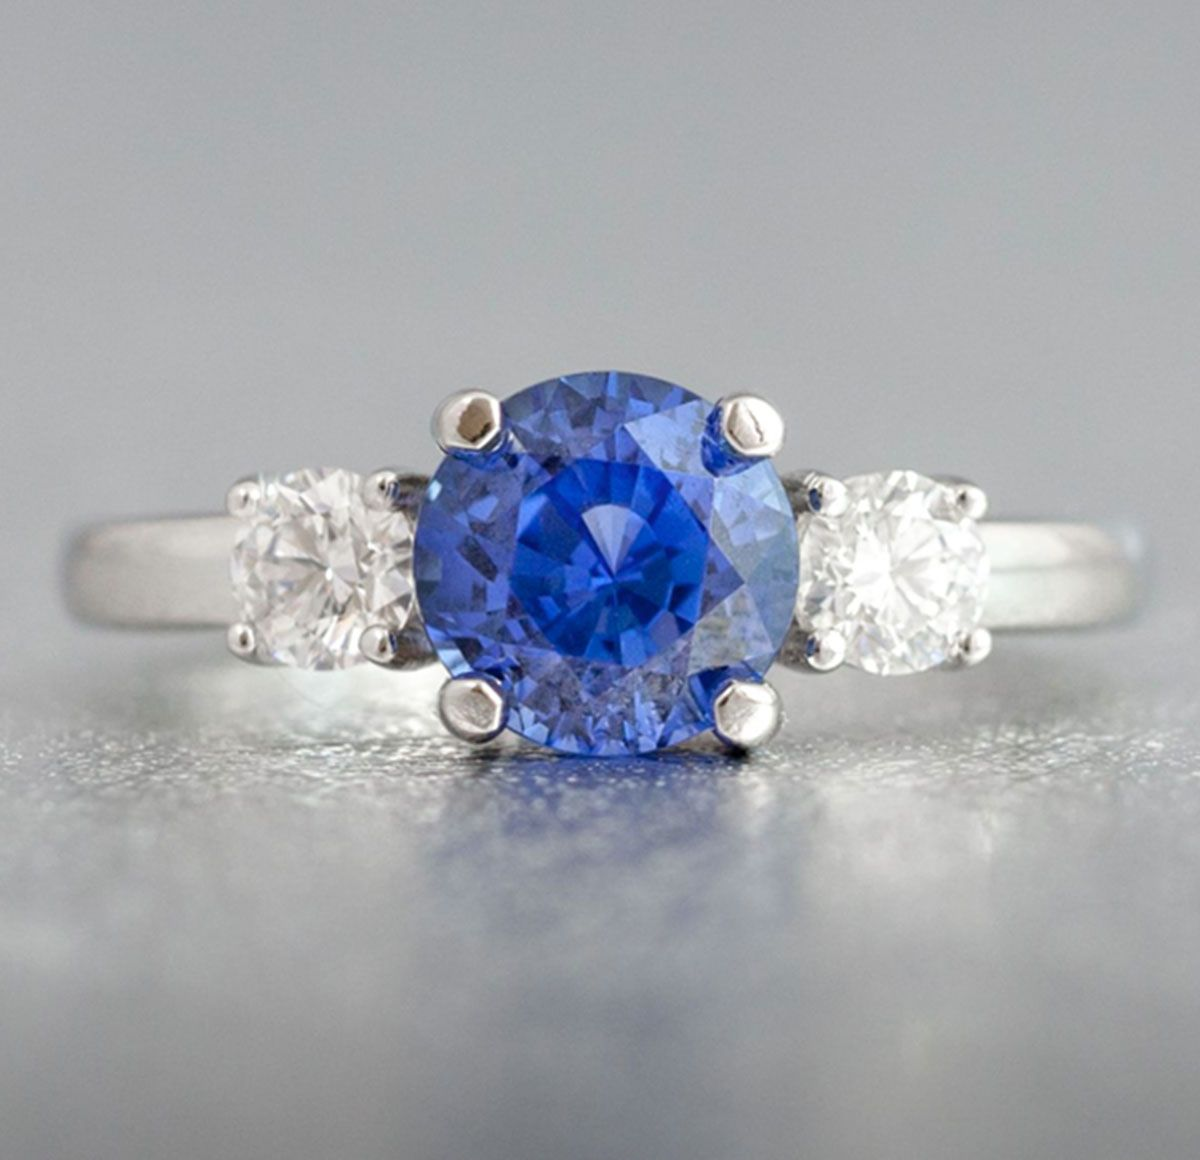 Michael's Engagement Ring A Natural, Unheated Sapphire Is The Eyecatching  Center Stone For This White Gold Threestone Setting